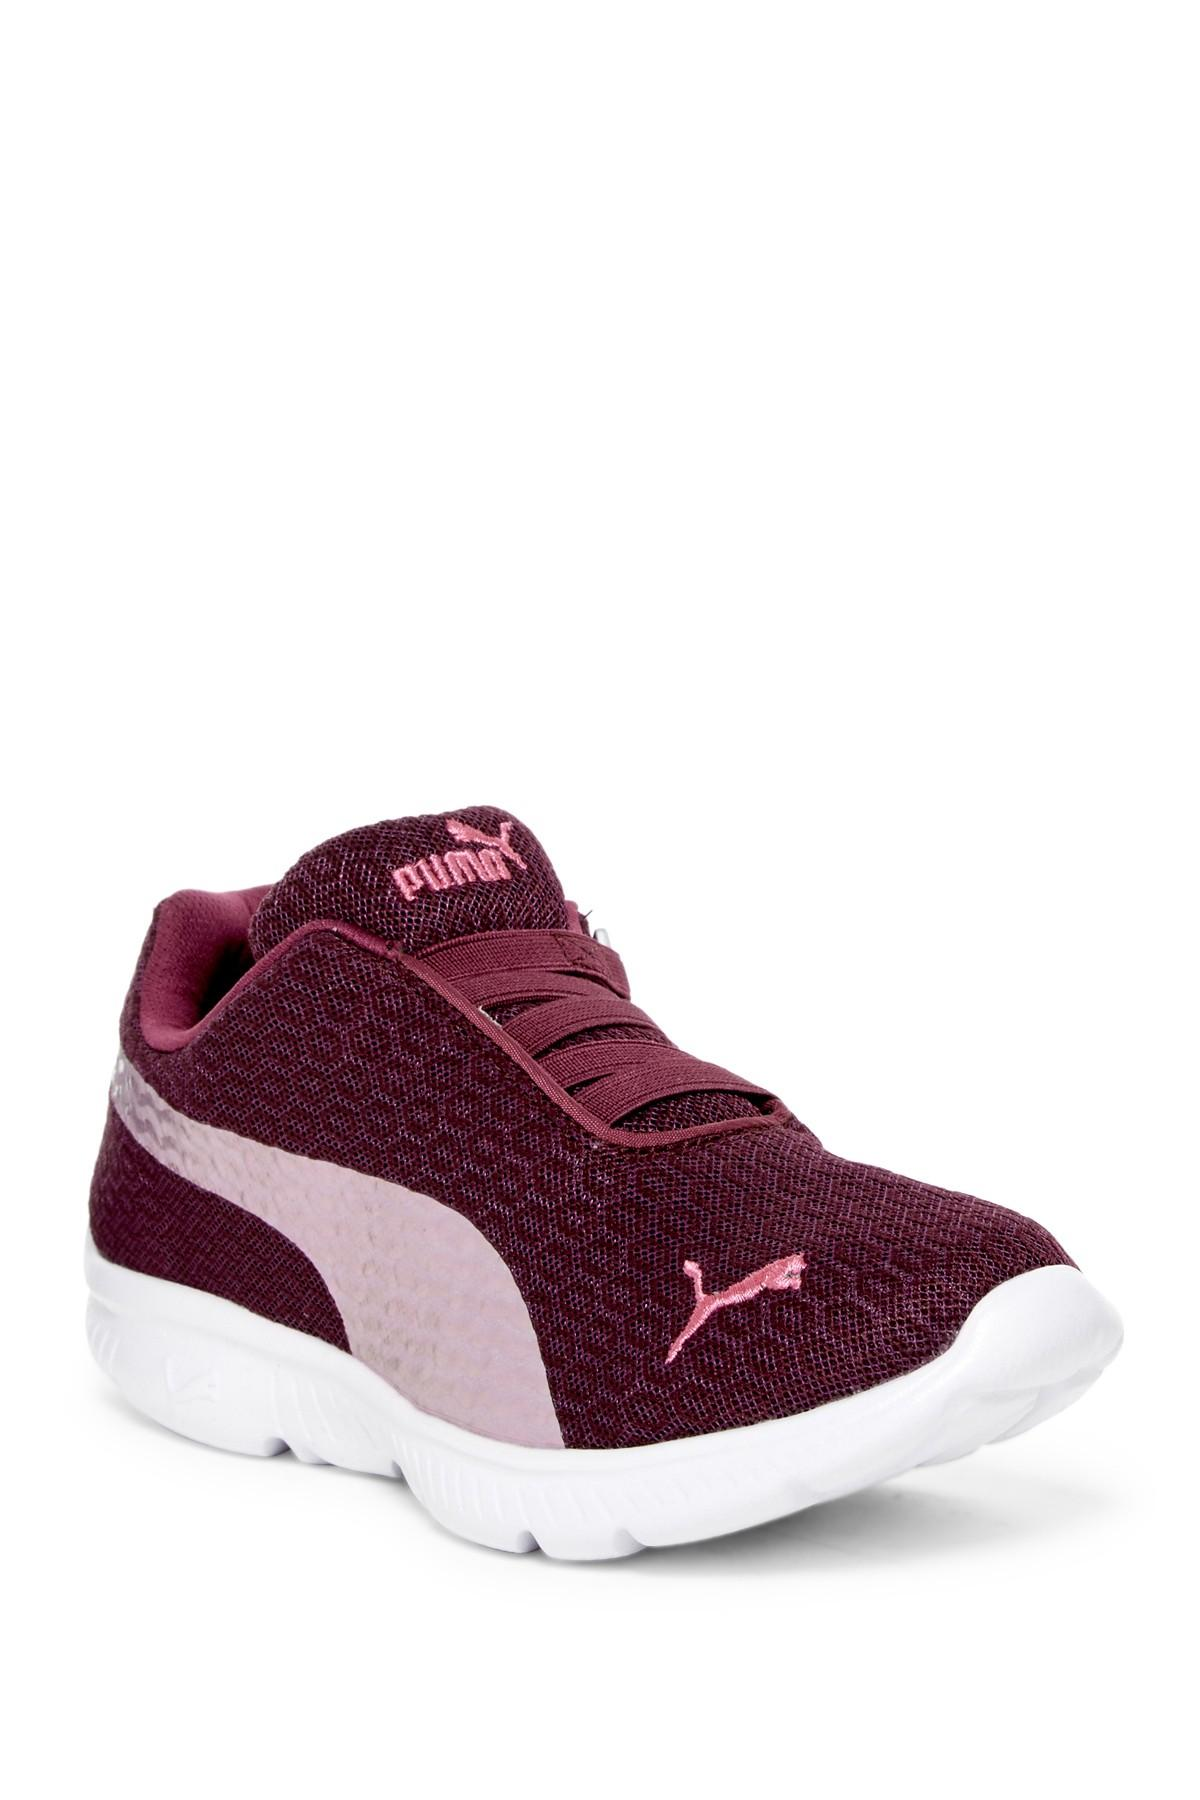 Puma Fashin Alt Women Twill Shoes